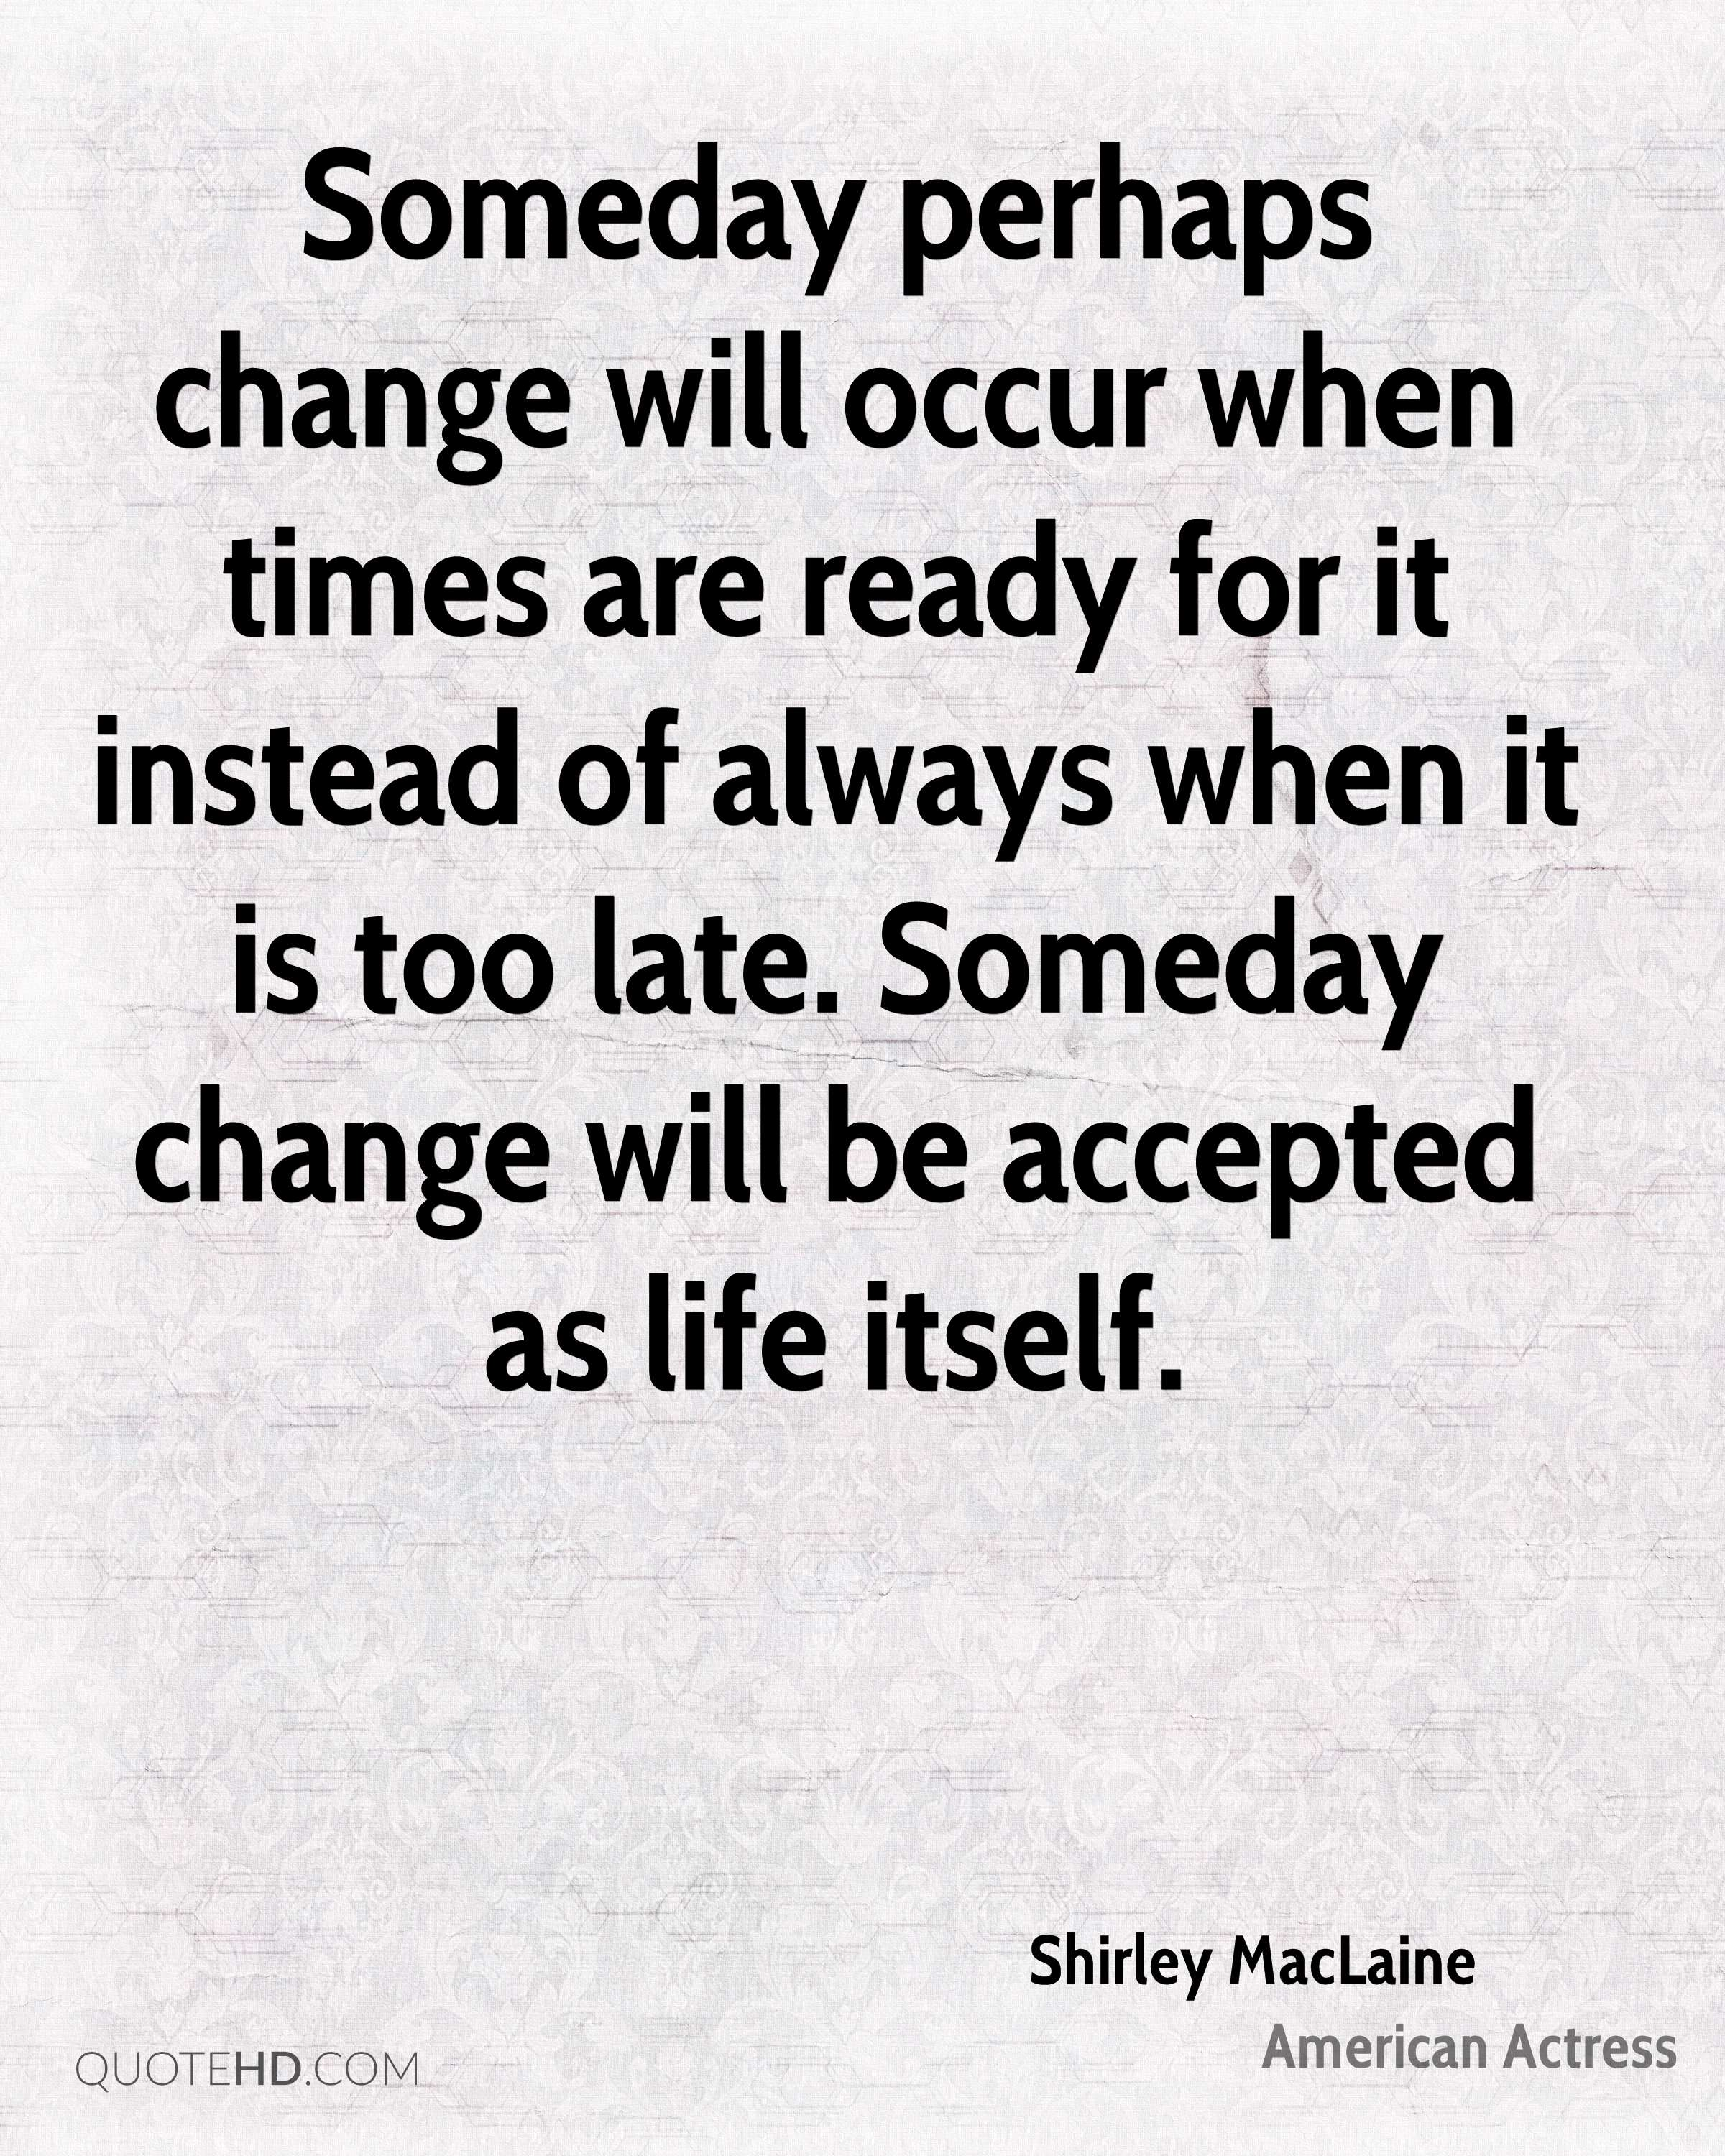 Someday perhaps change will occur when times are ready for it instead of always when it is too late. Someday change will be accepted as life itself.